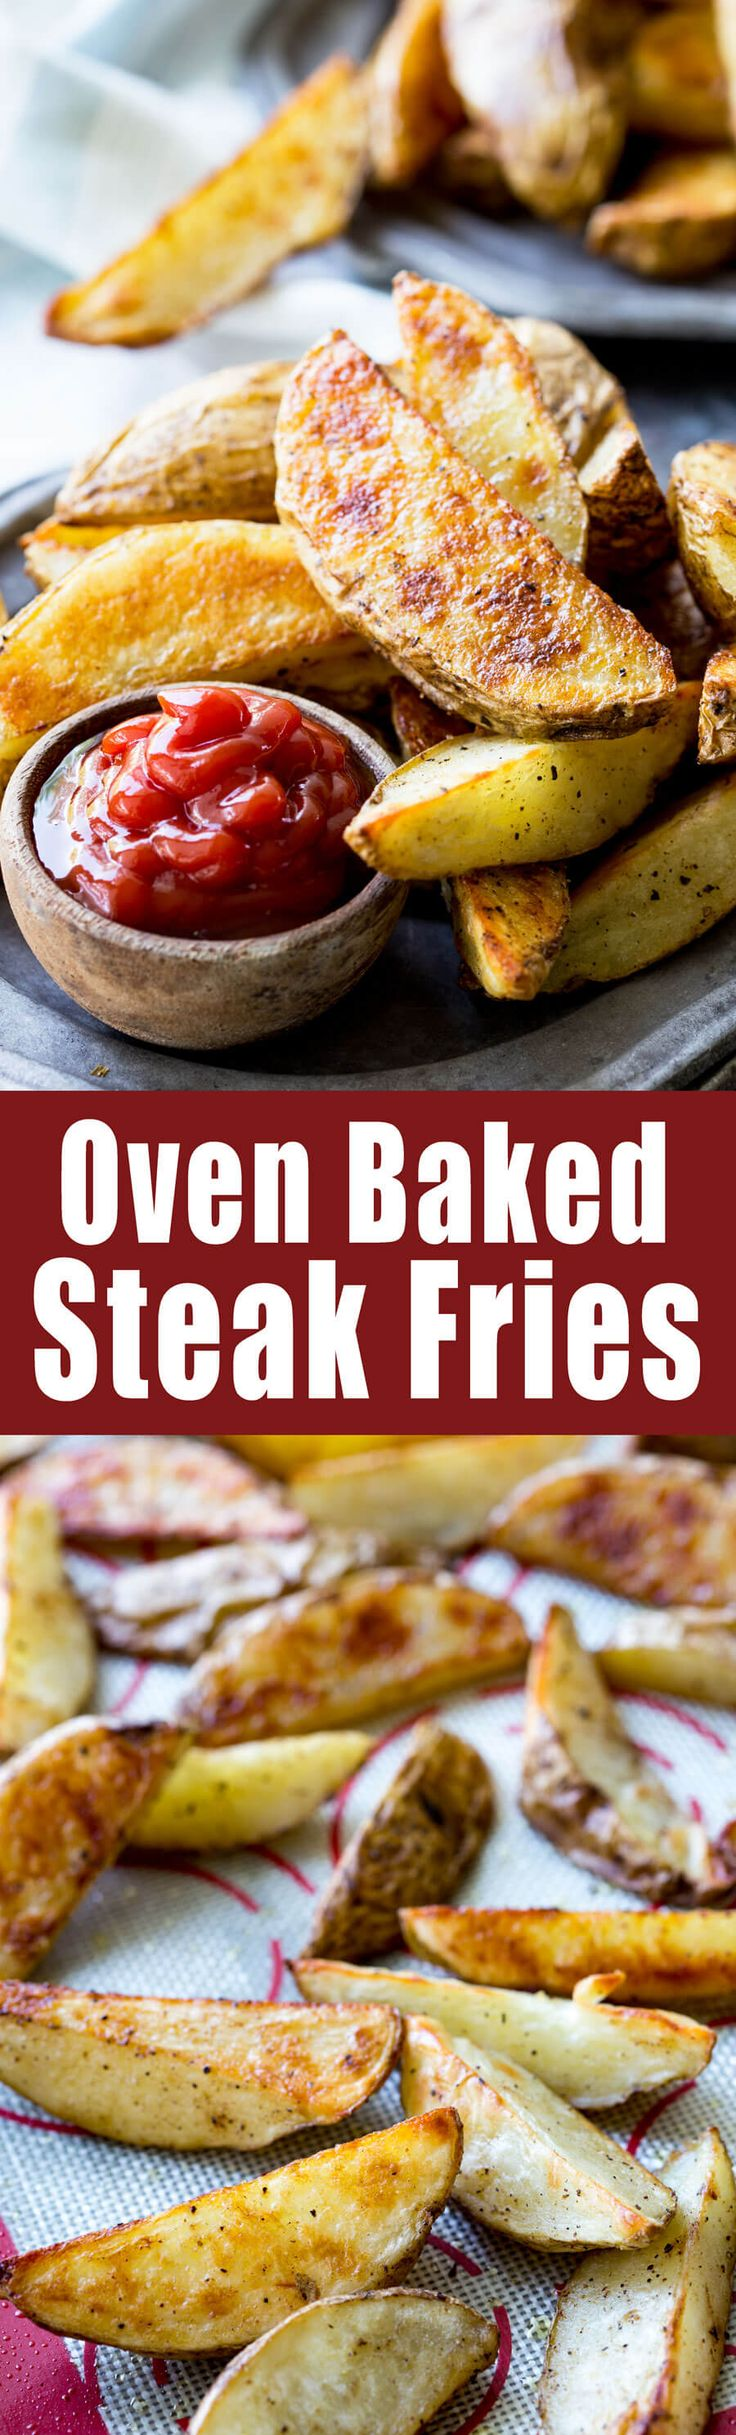 Crispy and easy oven baked steak fries. These fries have the perfect crispy exterior and a soft interior. So good!